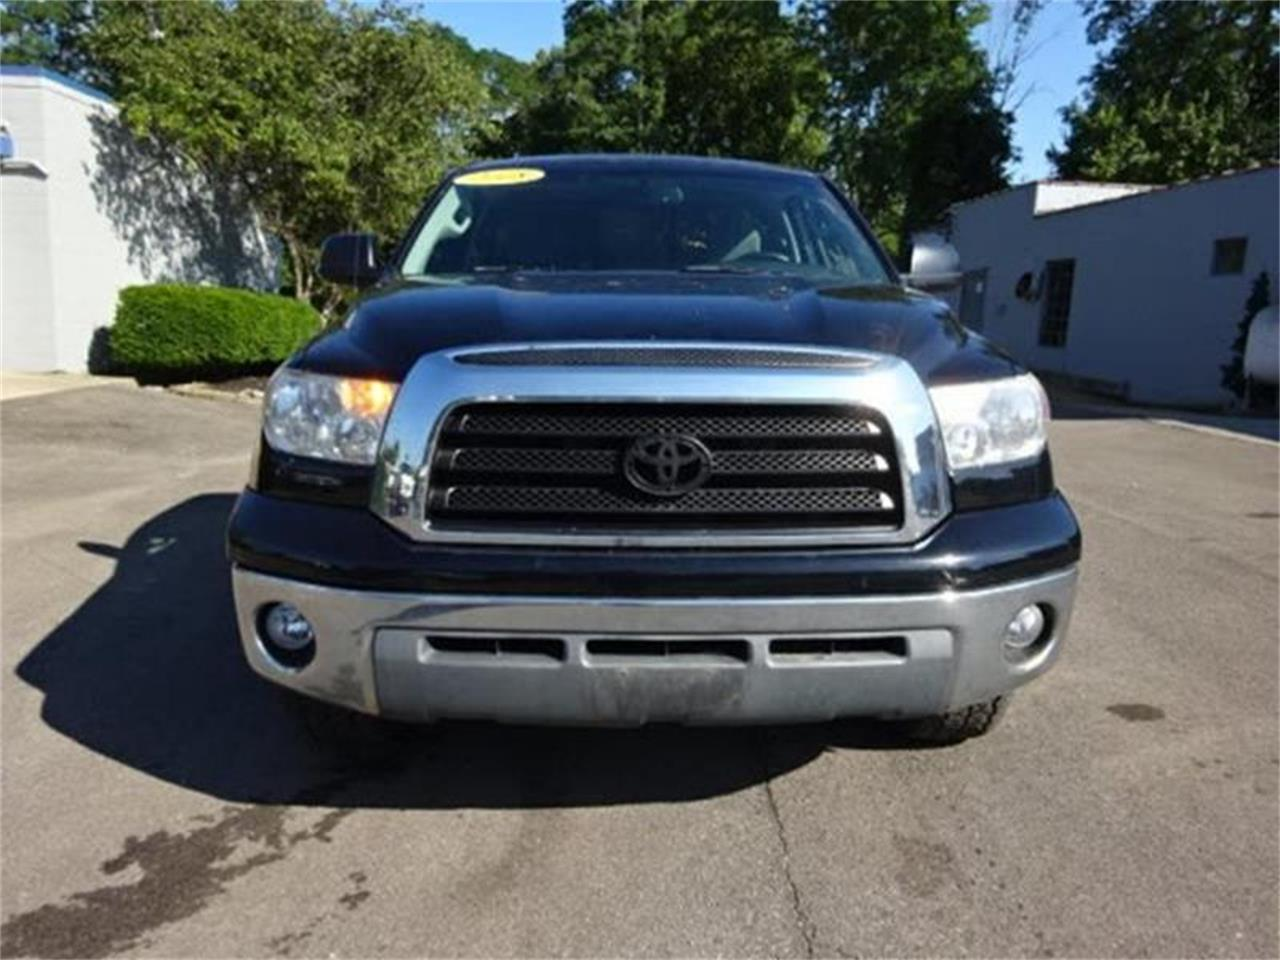 Large Picture of '08 Toyota Tundra located in Loveland Ohio - $11,000.00 - MBKP